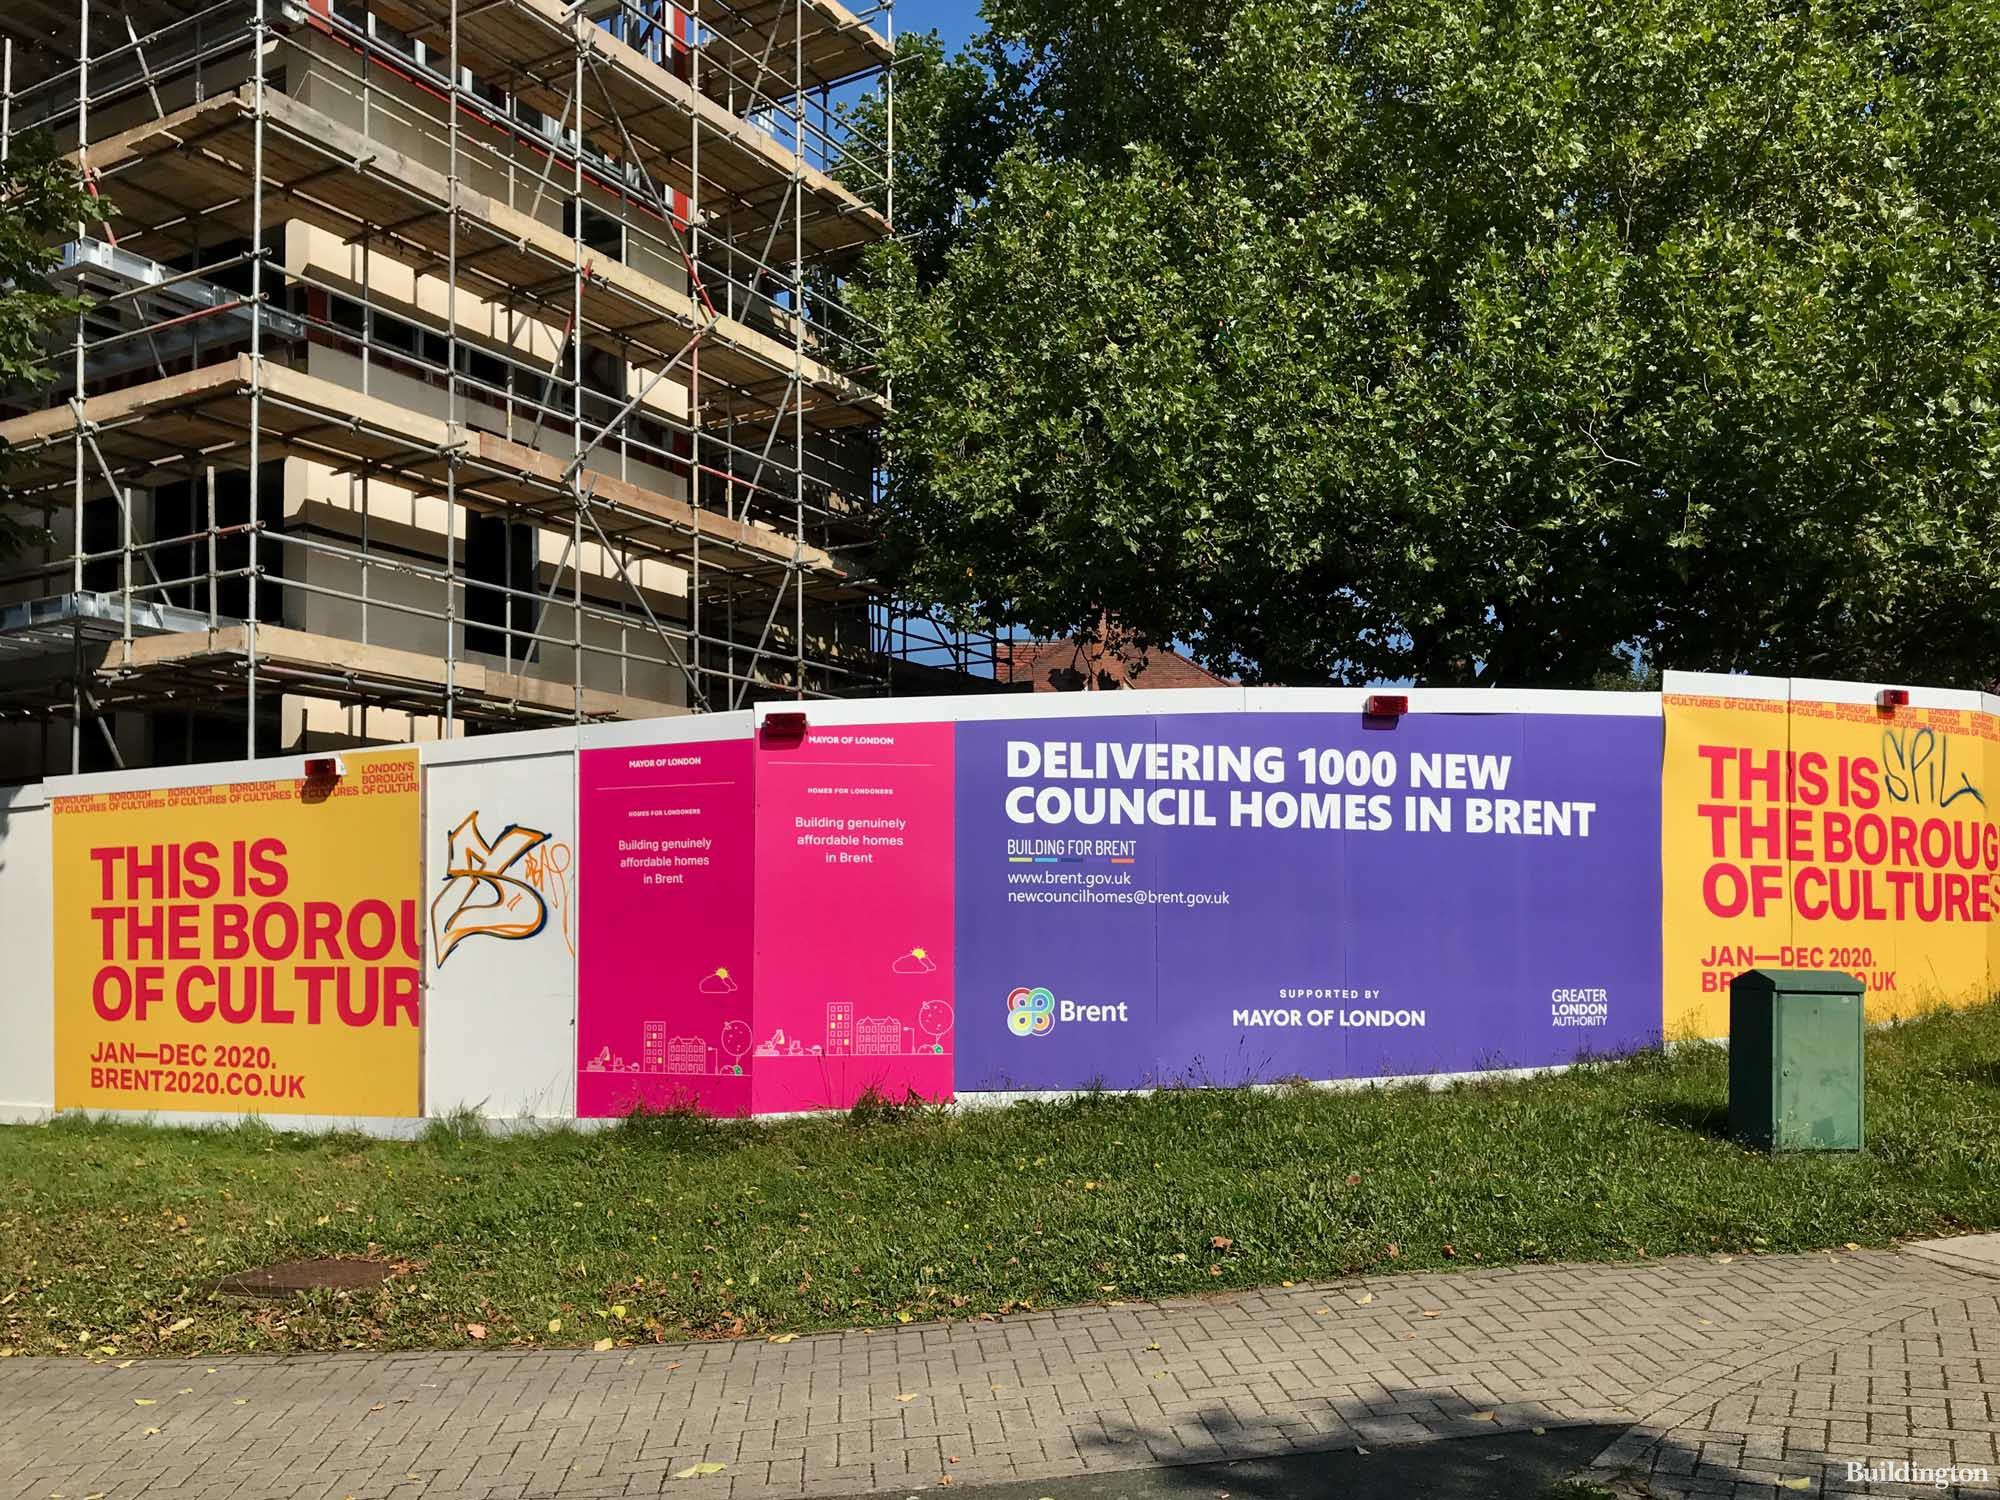 Corringham Road site - Delivering 1000 new homes in Brent. The council's messages on the hoarding.